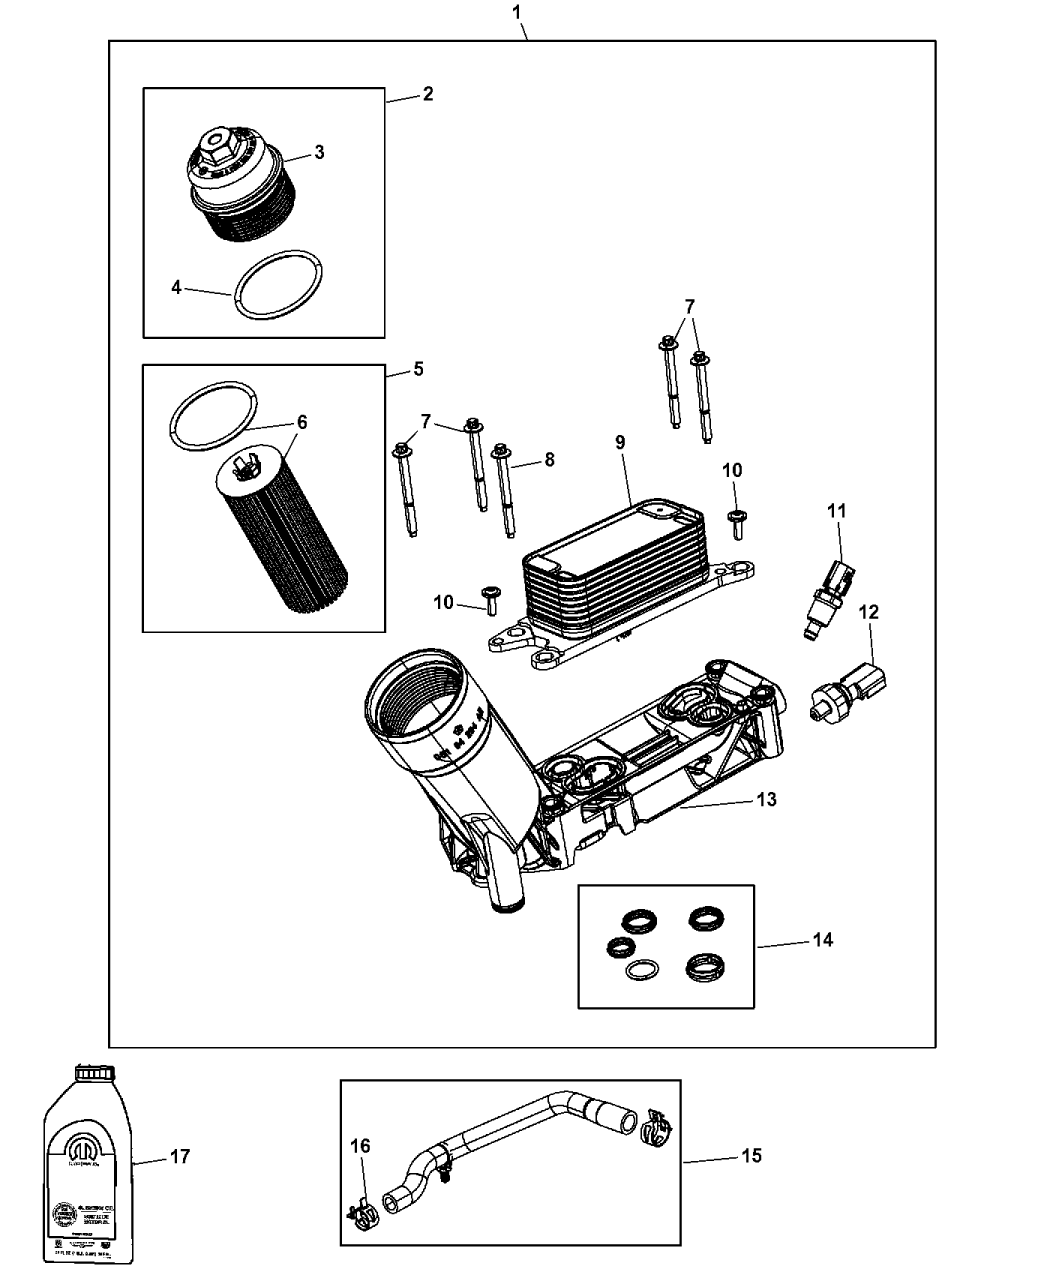 68105583AA - Genuine Jeep ADAPTER-ENGINE OIL FILTER